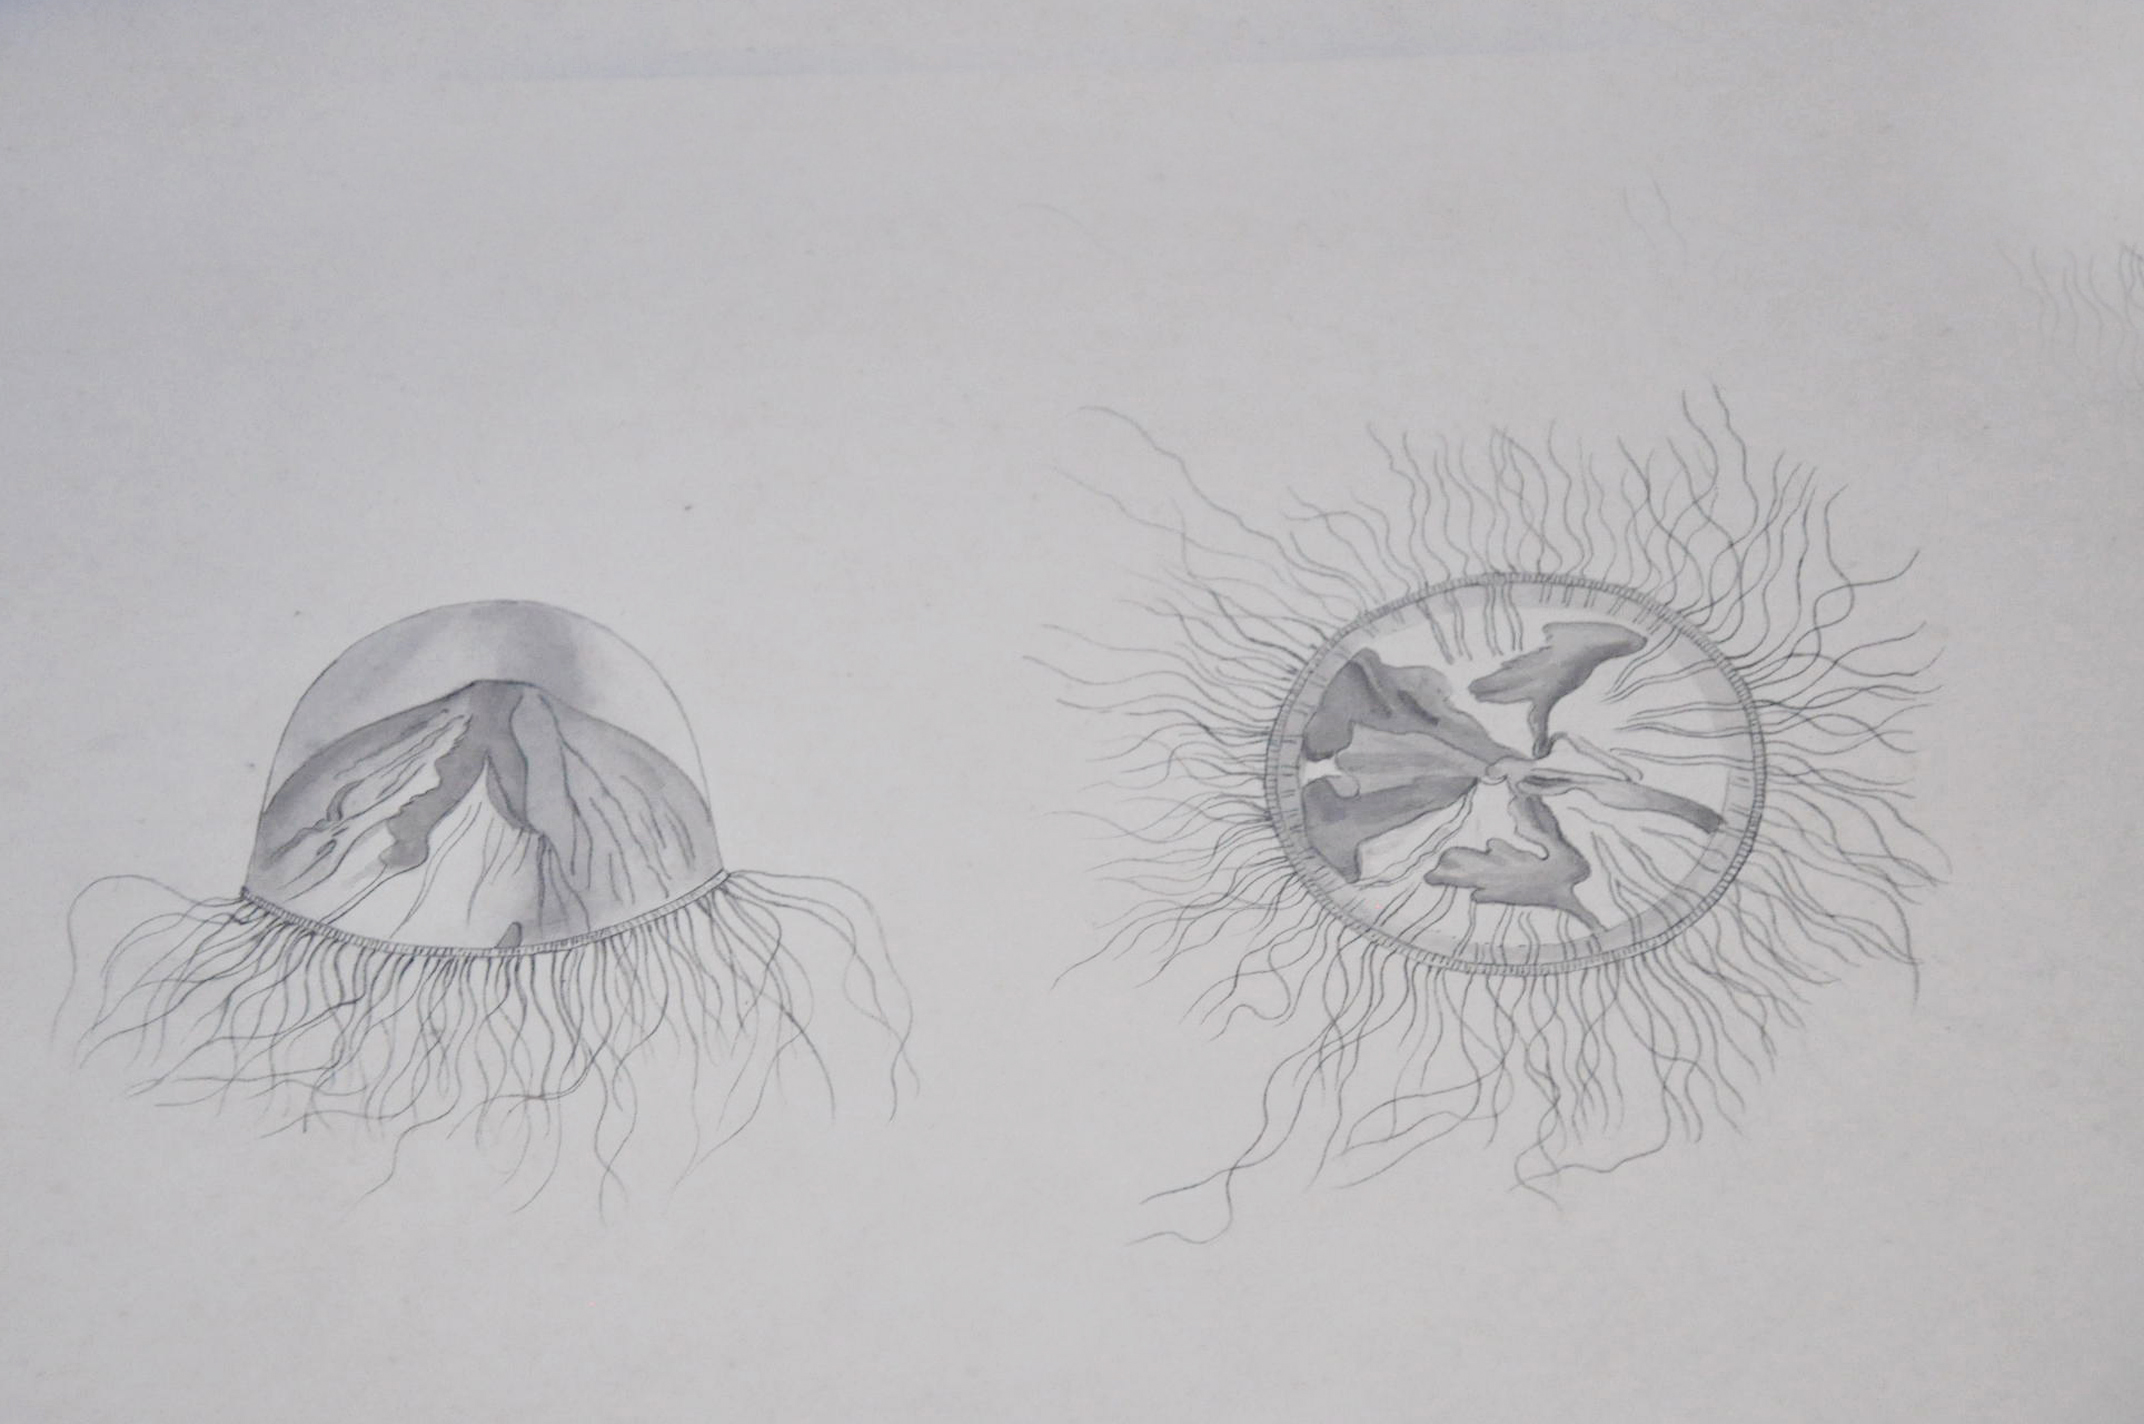 Line Drawing Jellyfish : File drawing of jellyfish by lesueur g wikimedia commons